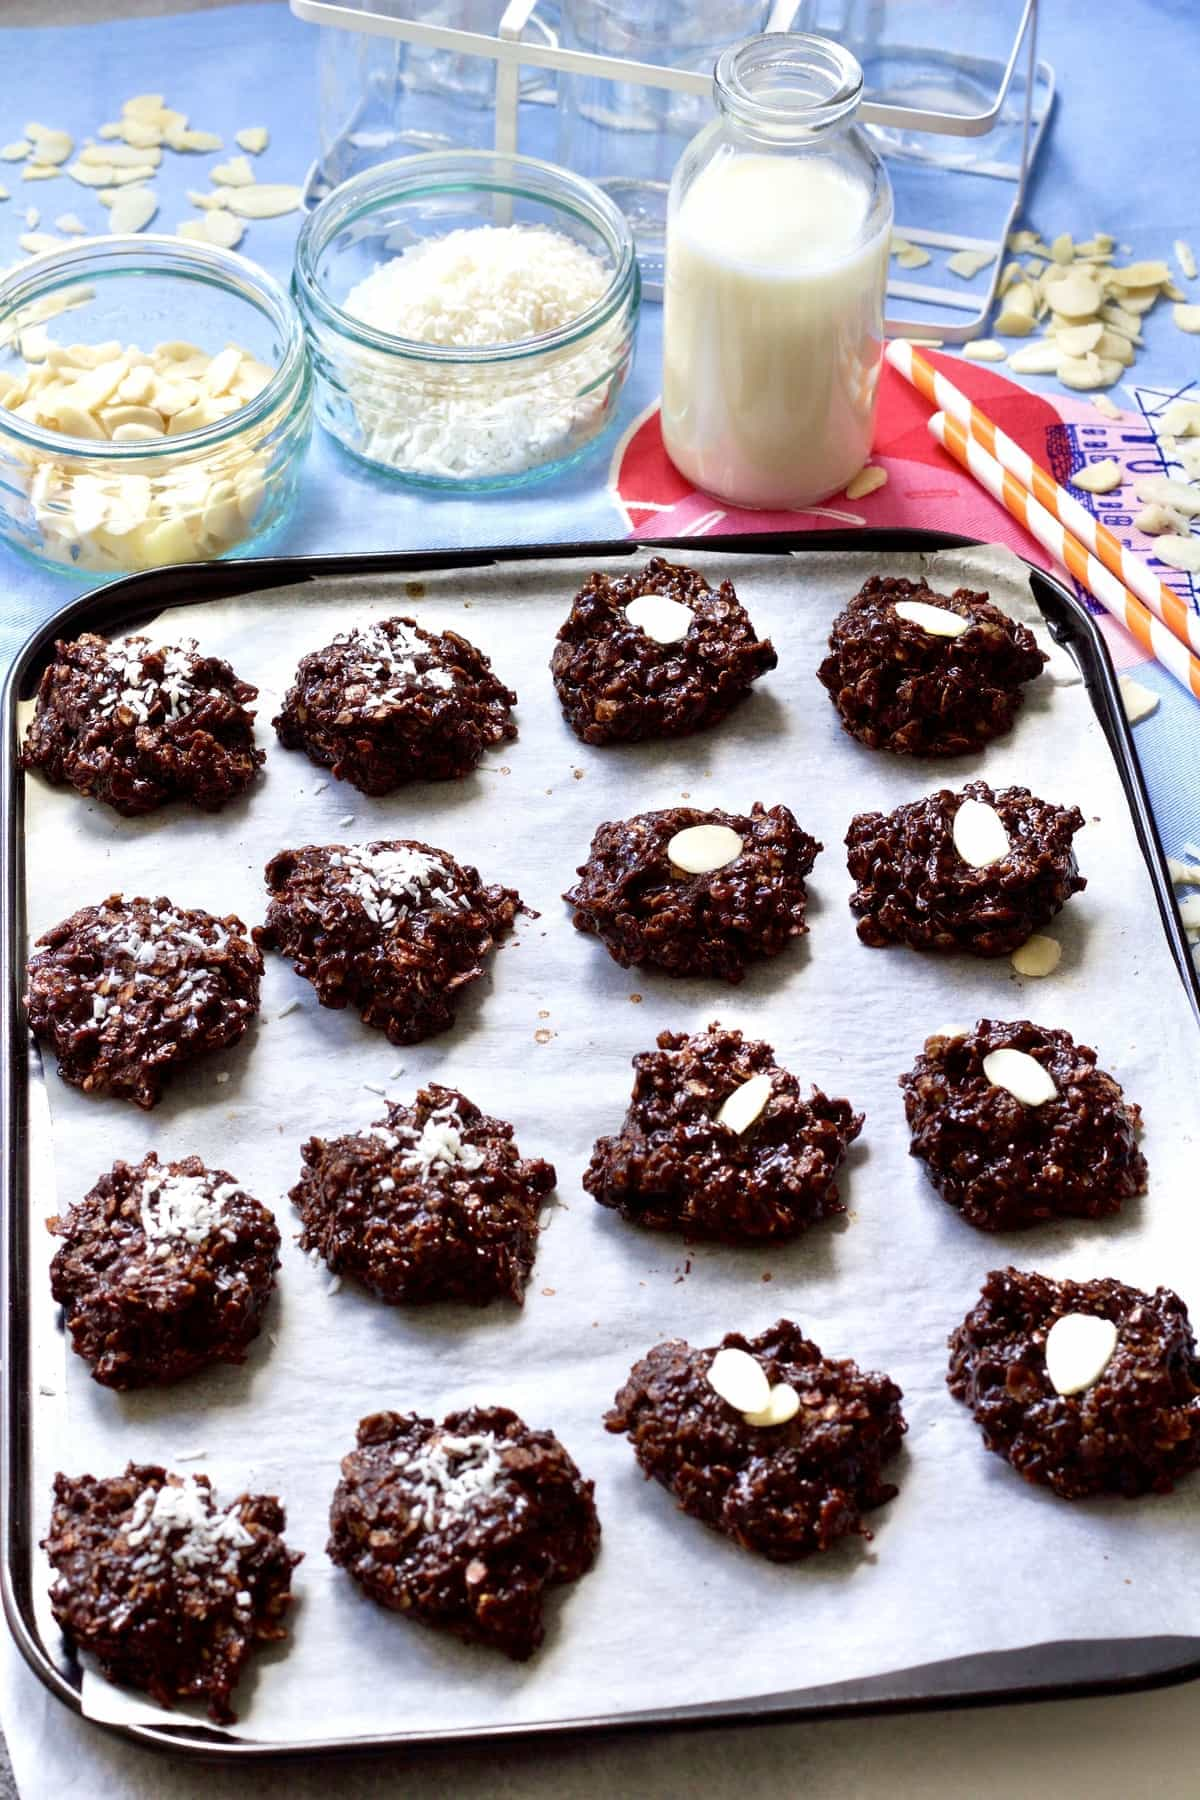 Cookies on a tray decorated with coconut and almonds.